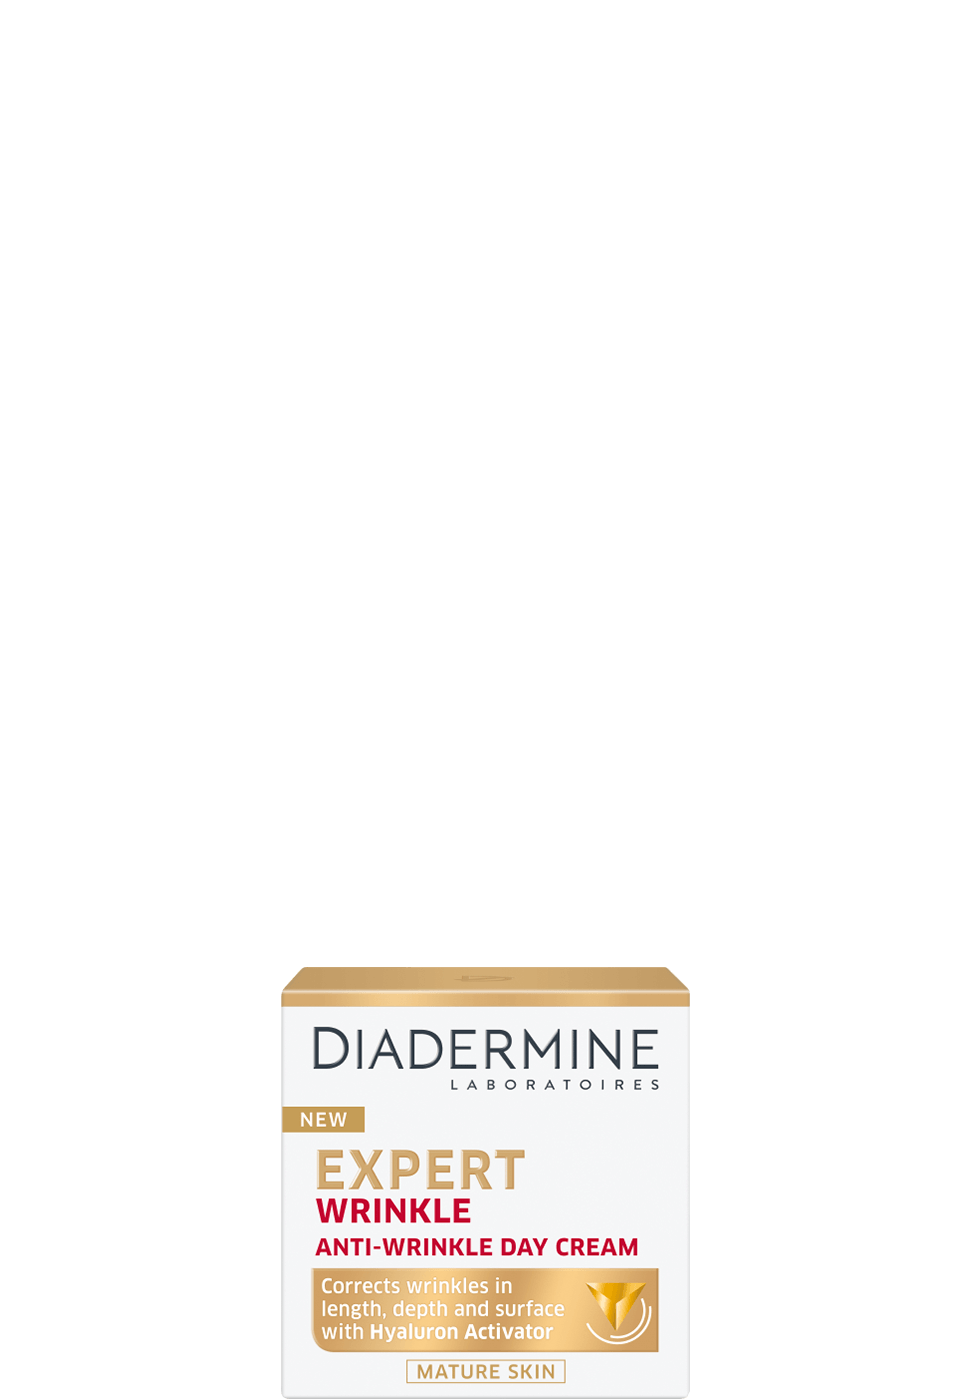 diadermine_com_expert_wrinkle_anti_wrinkle_day_cream_970x1400